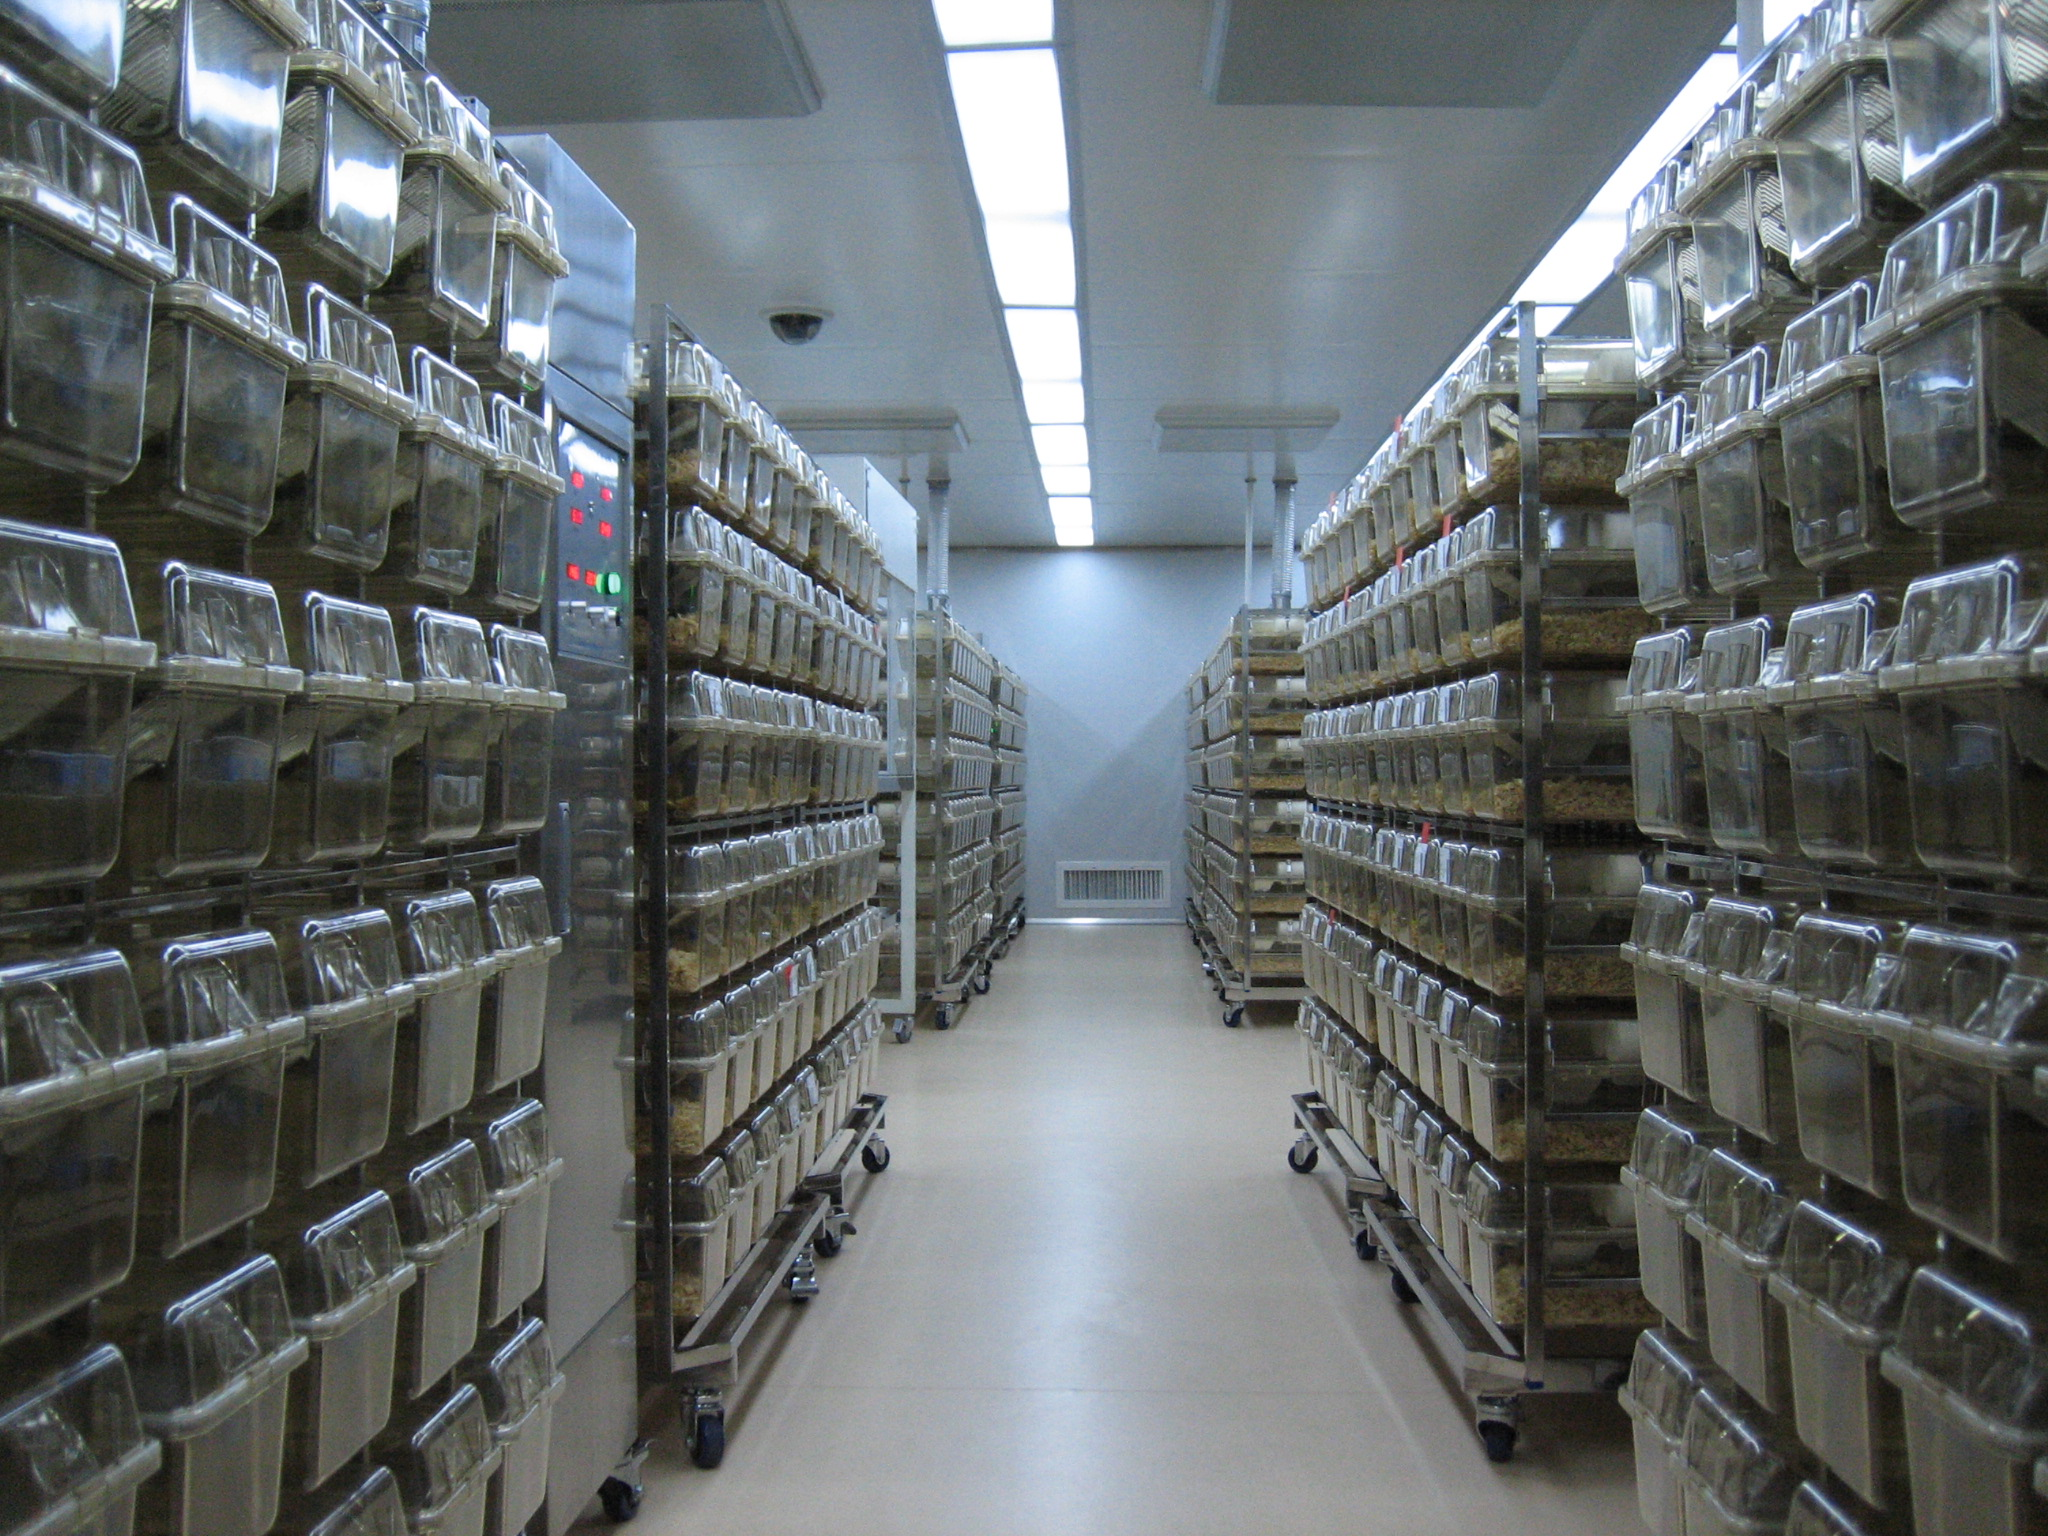 Mouse cages inside the specific pathogen free (SPF) facility.